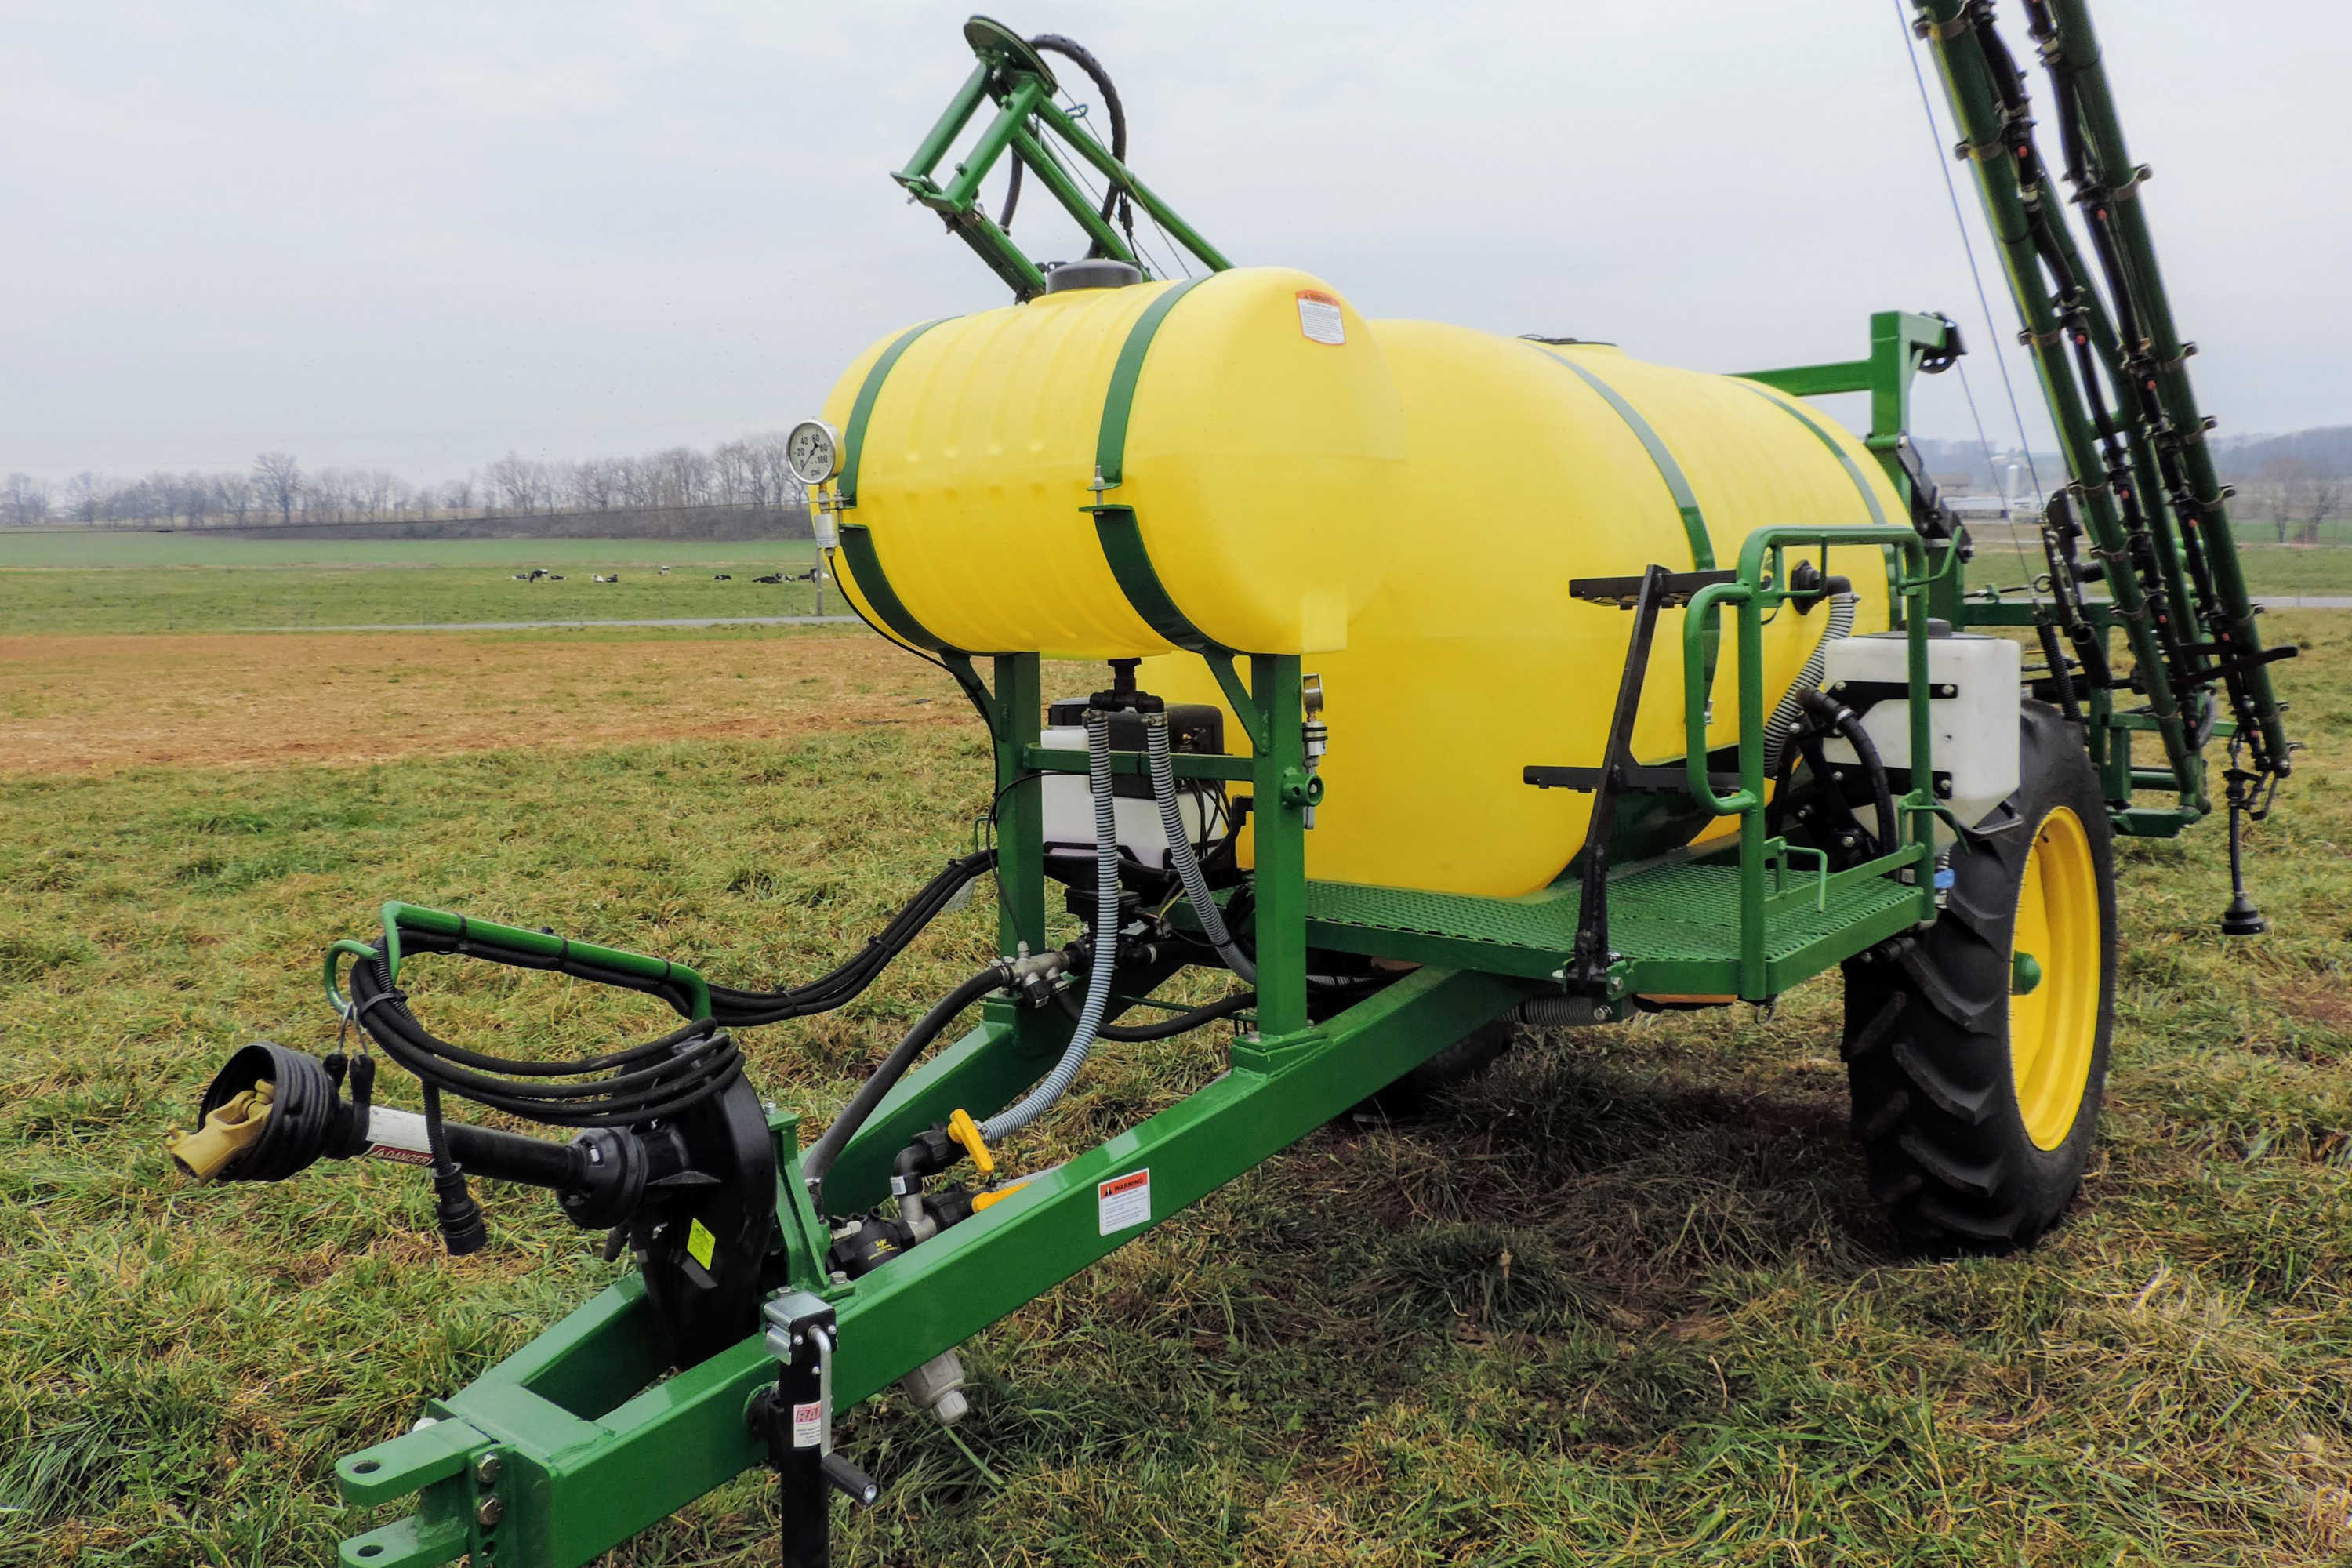 500 gallon Trailer Field Sprayer with 45' SpringRide Booms